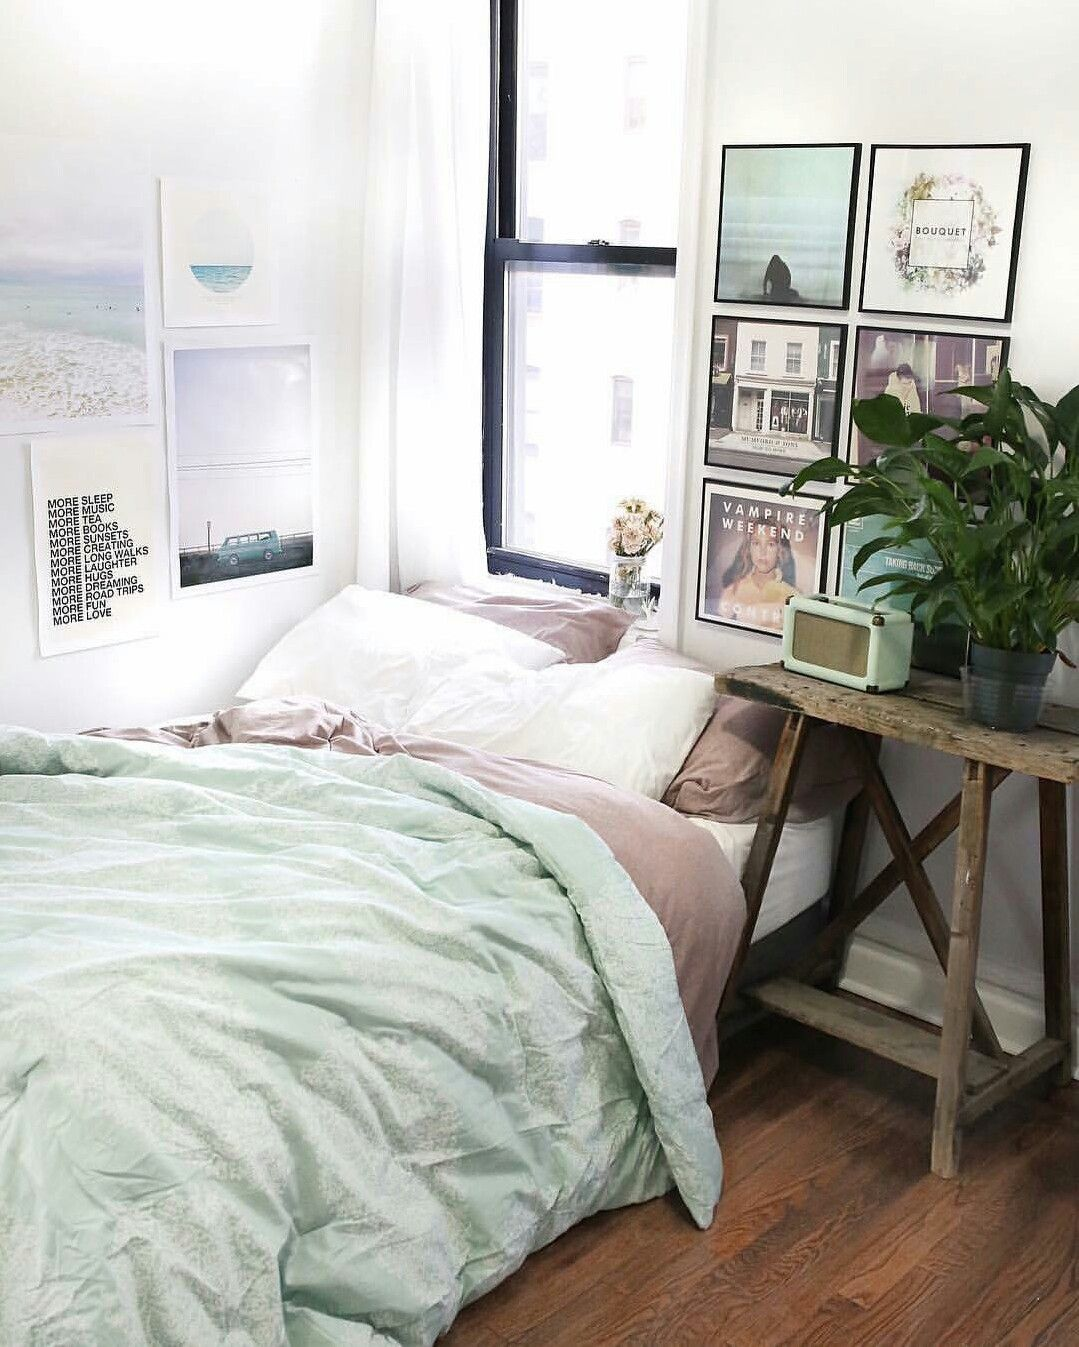 Why Pastel Colors Should Be Part Of Your Bedroom Design pastel colors Why Pastel Colors Should Be Part Of Your Bedroom Design Why Pastel Colors Should Be Part Of Your Bedroom Design